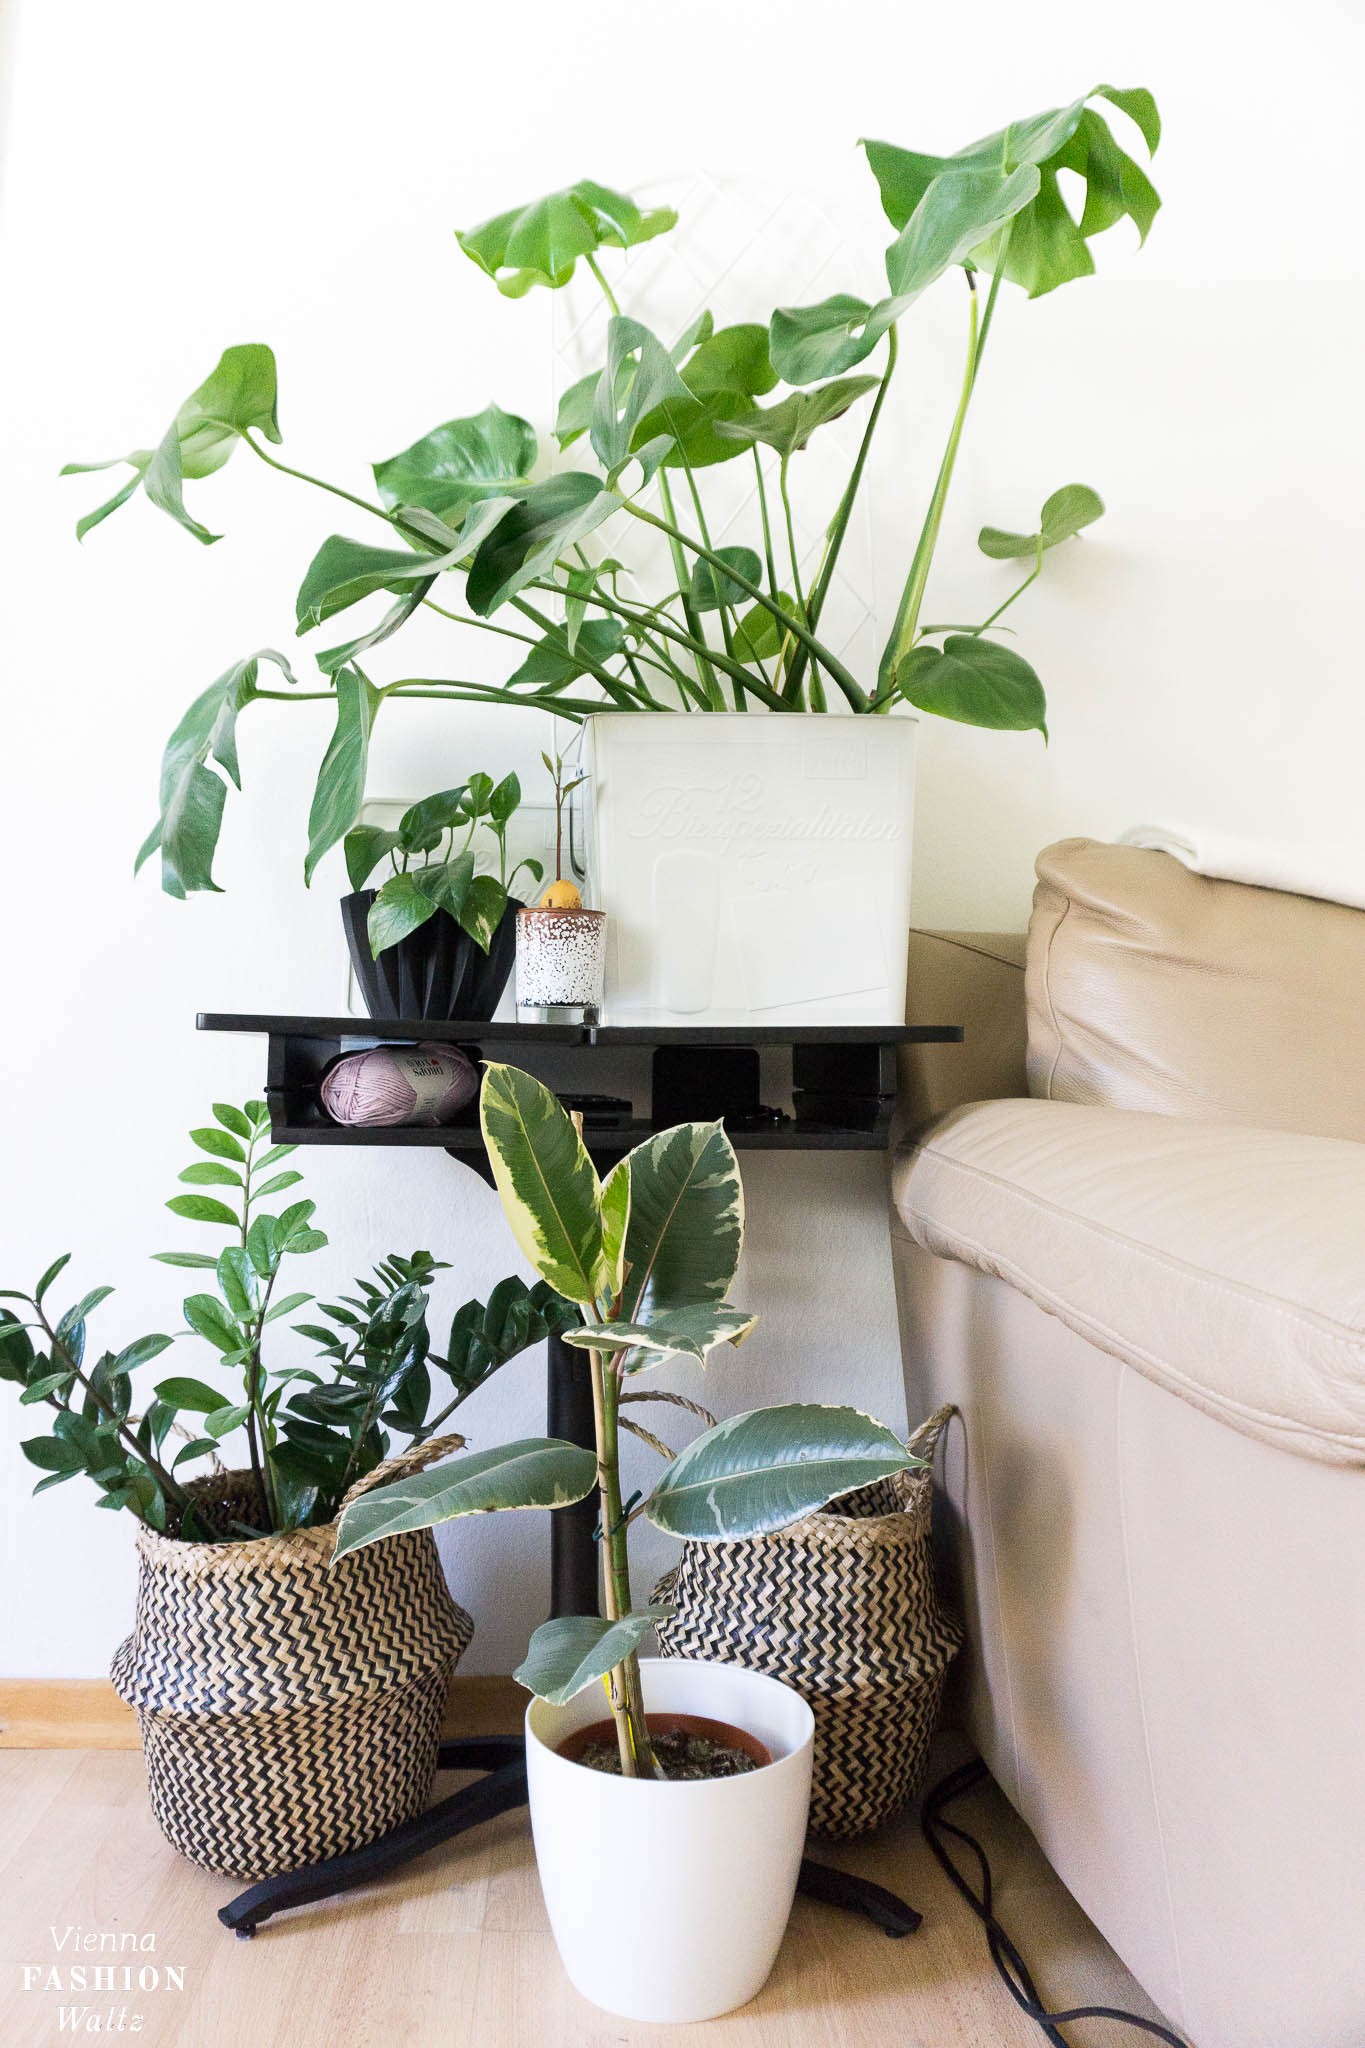 DIY Blumentopf zum Aufhängen | Upcycling Wall Planters, plantshelfie, urbanjunglebloggers, Zimmerpflanzen. Wohnideen, green living, Leben mit Pflanzen, Deko, Urban Jungle Ideen | DIY Indoor Garden Plant Ideas | Grünlilien, Pflanzenwand, hanging plants | Blog Vienna Fashion Waltz